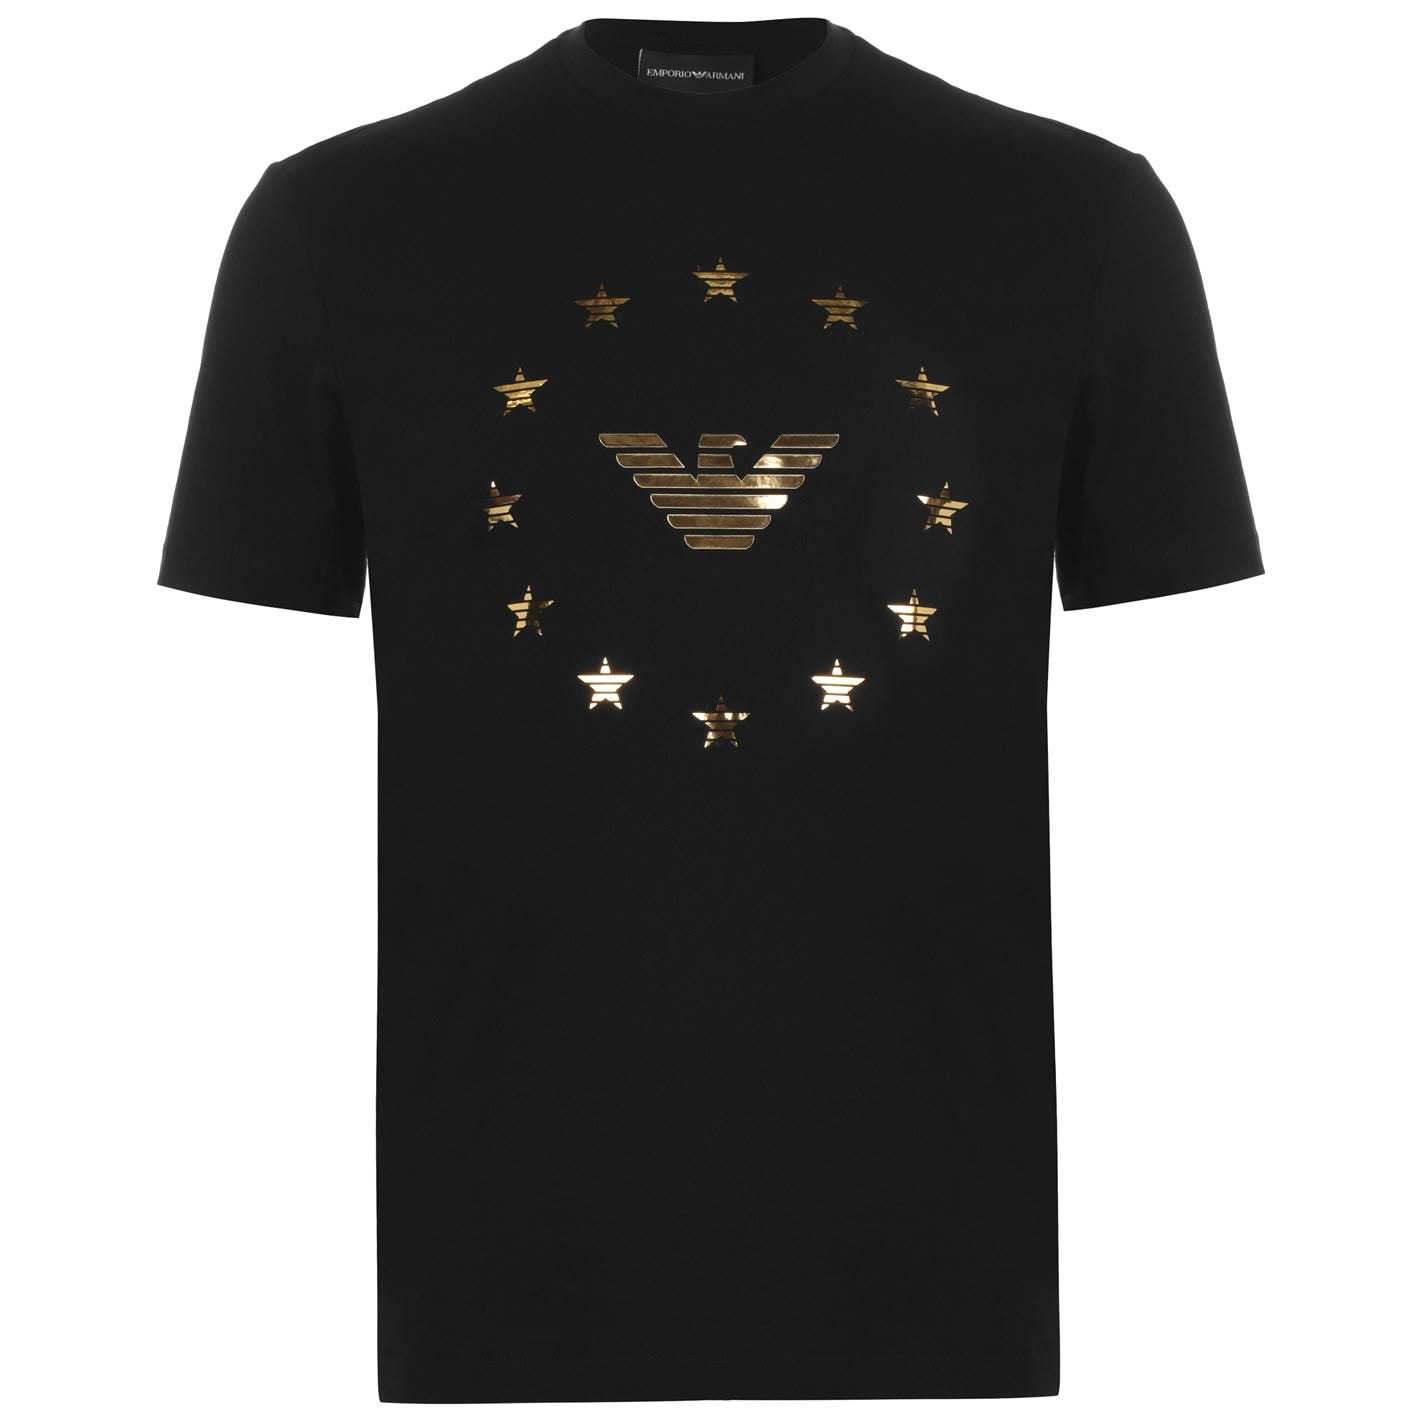 Black gold star t-shirt